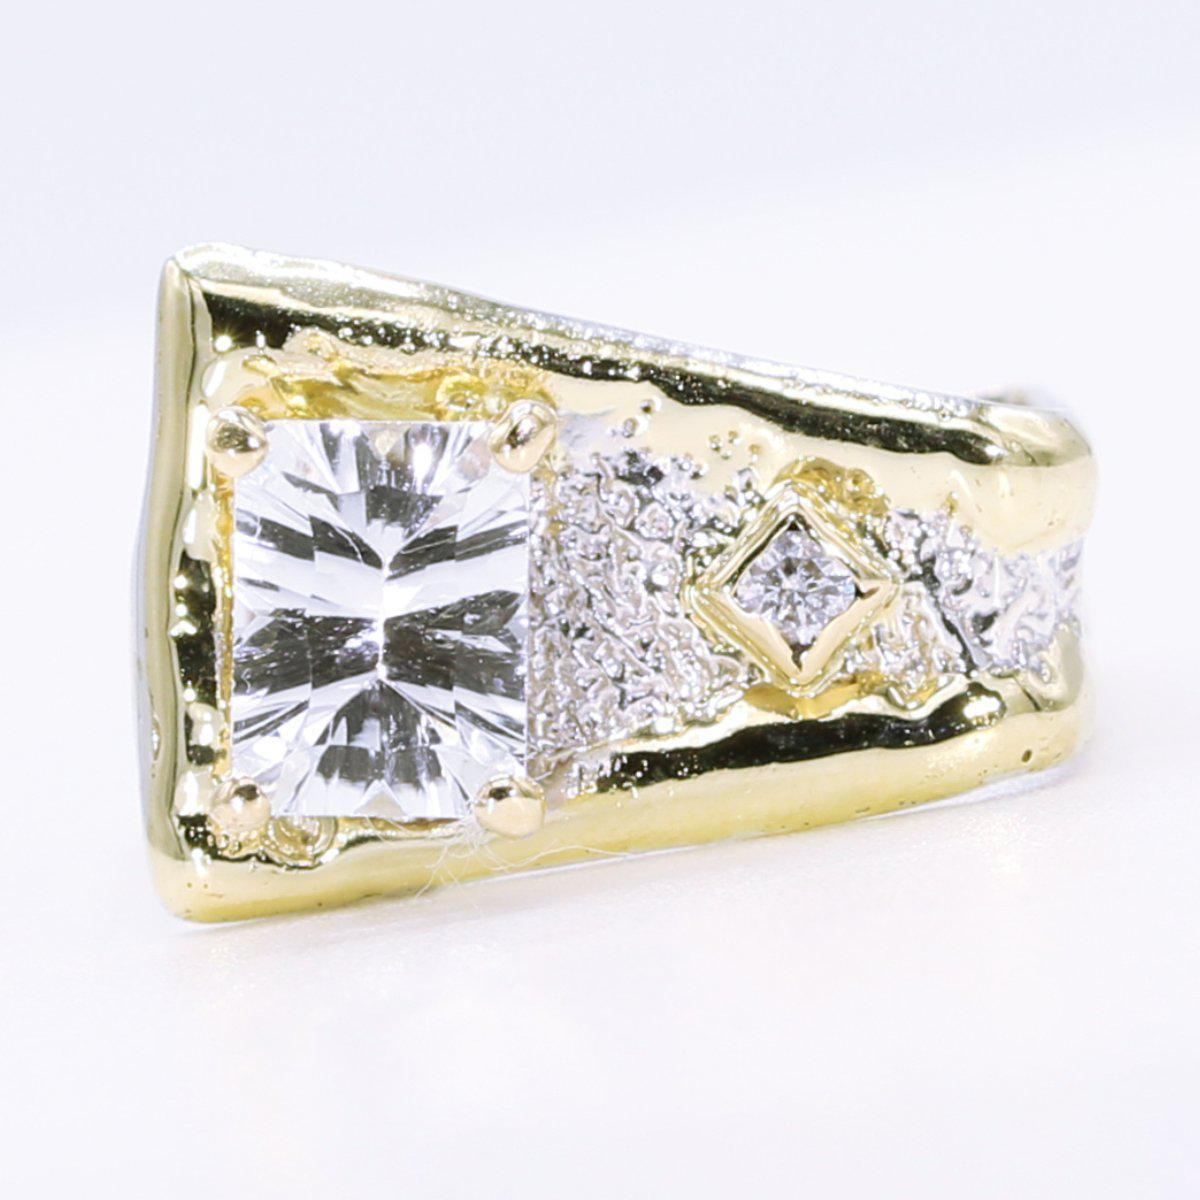 14K Gold & Crystalline Silver White Topaz & Diamond Ring - 34509-Fusion Designs-Renee Taylor Gallery